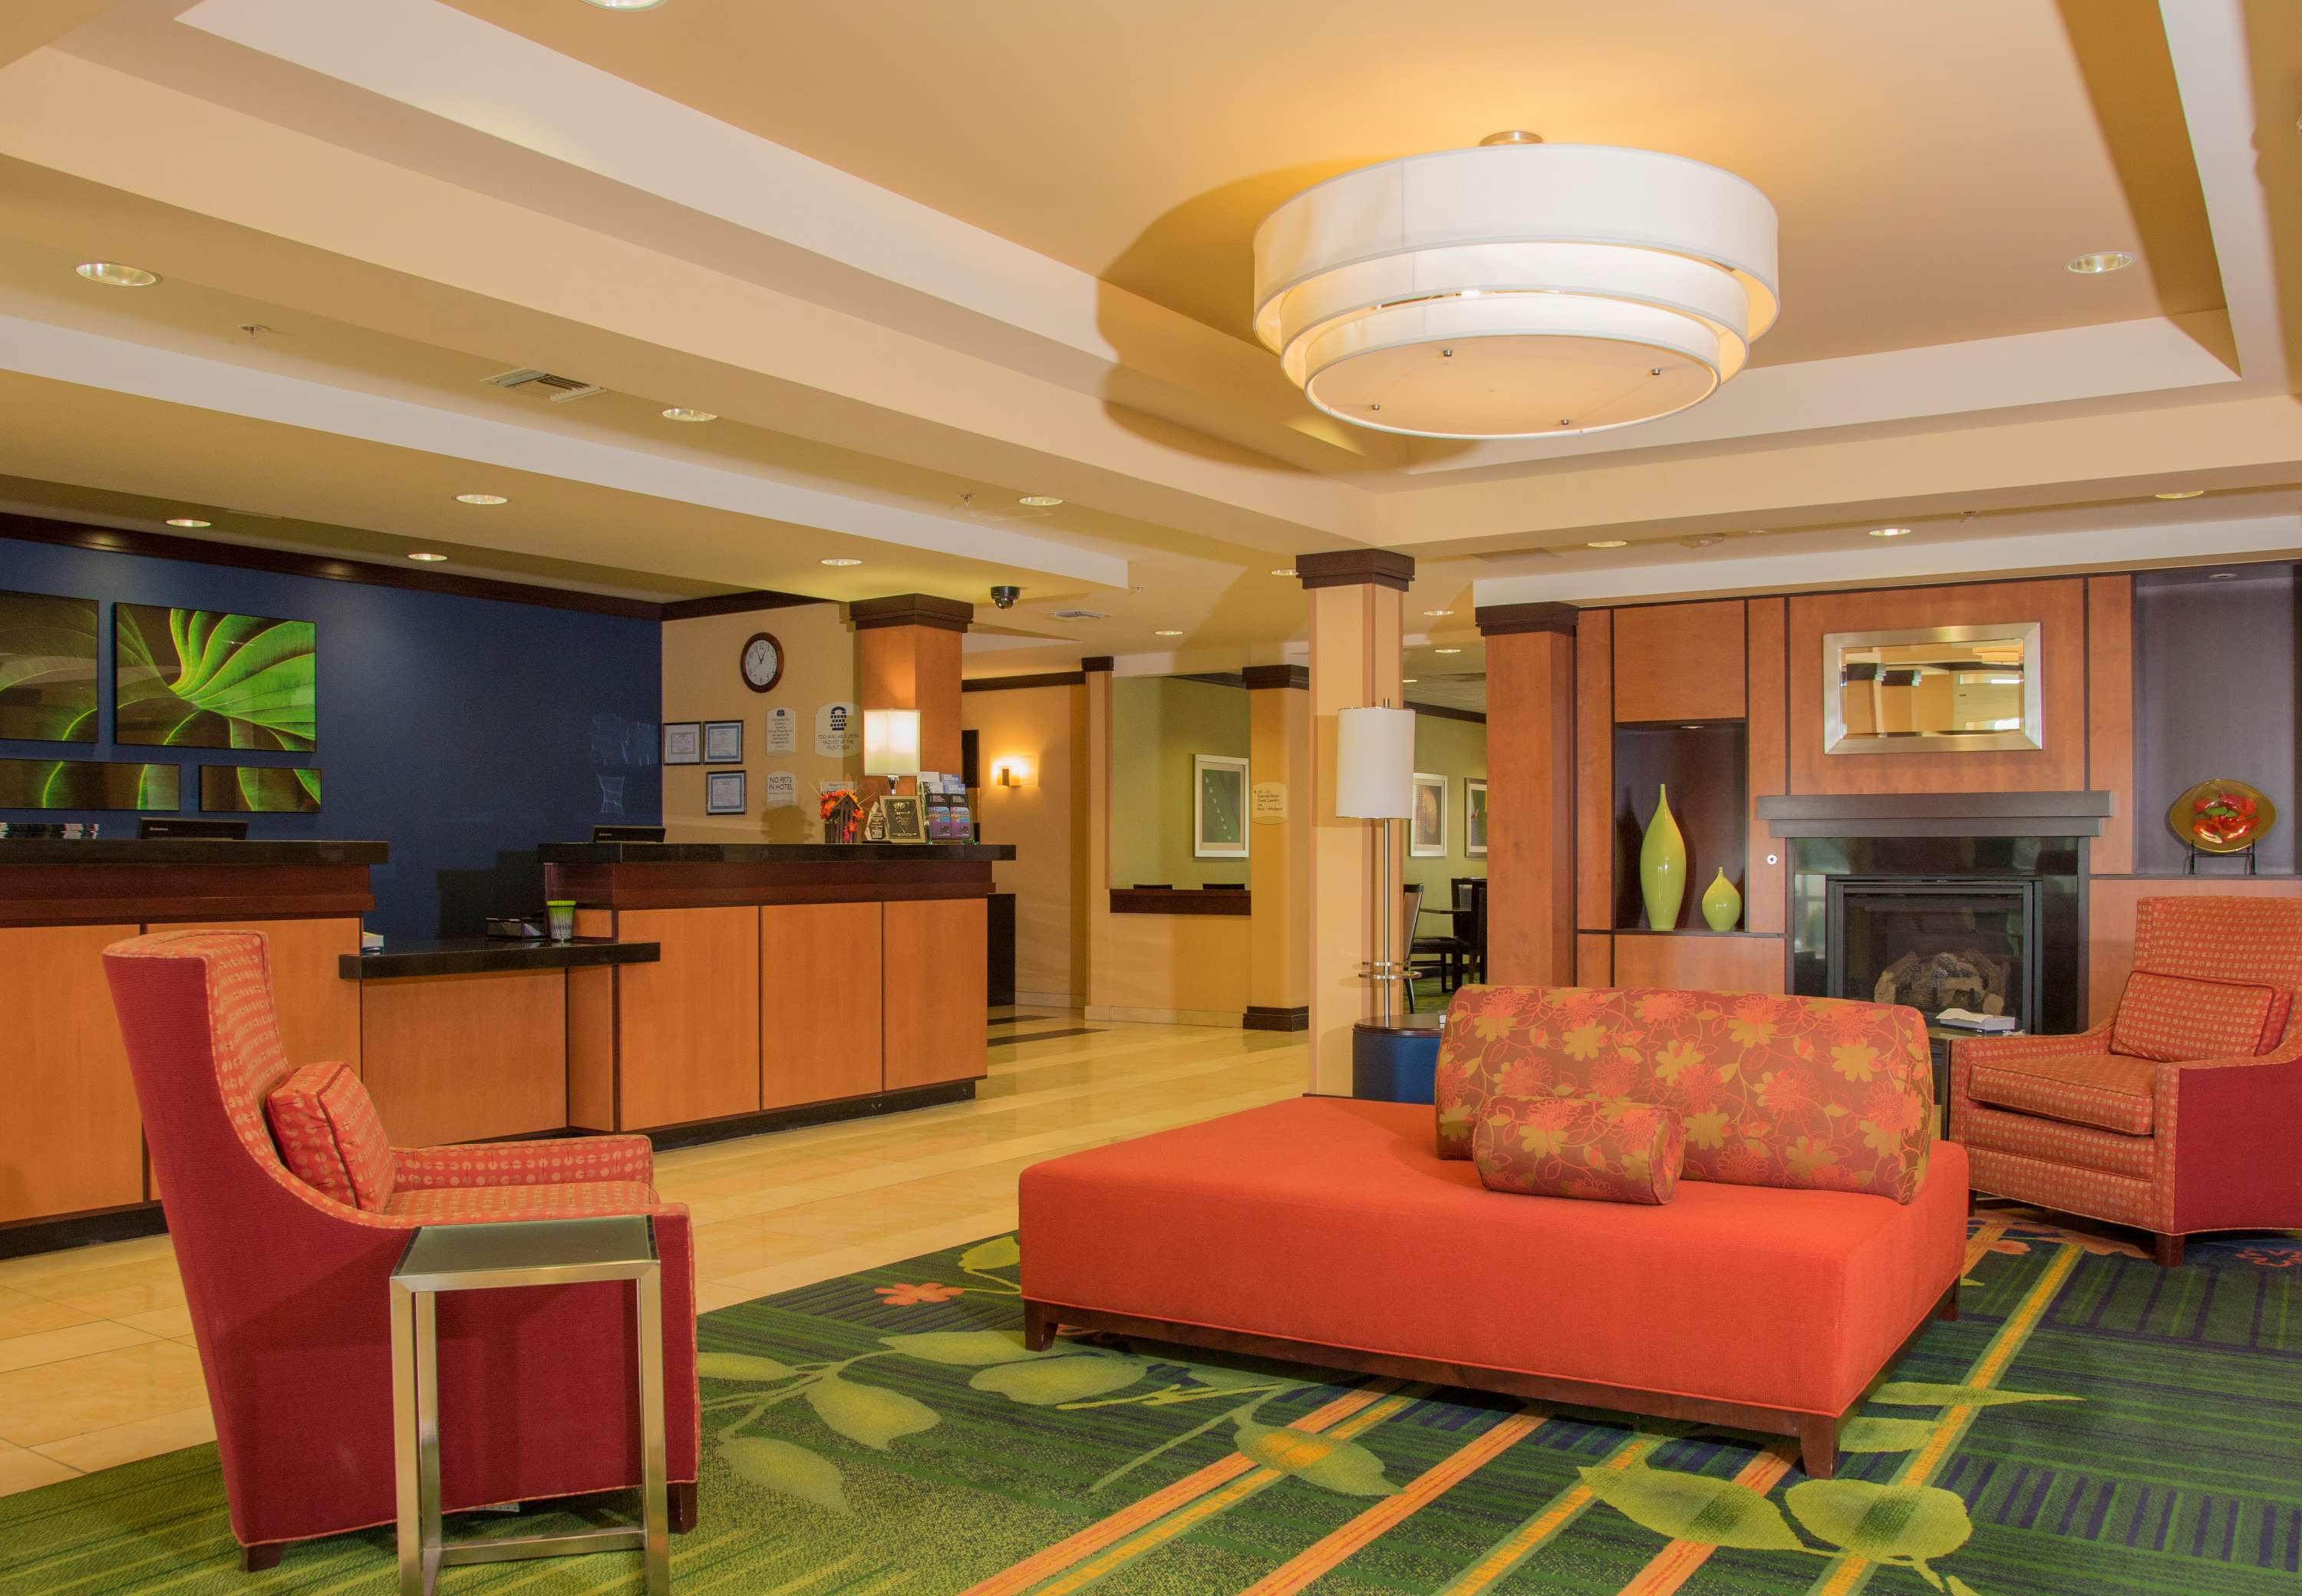 Fairfield Inn by Marriott - Carlsbad